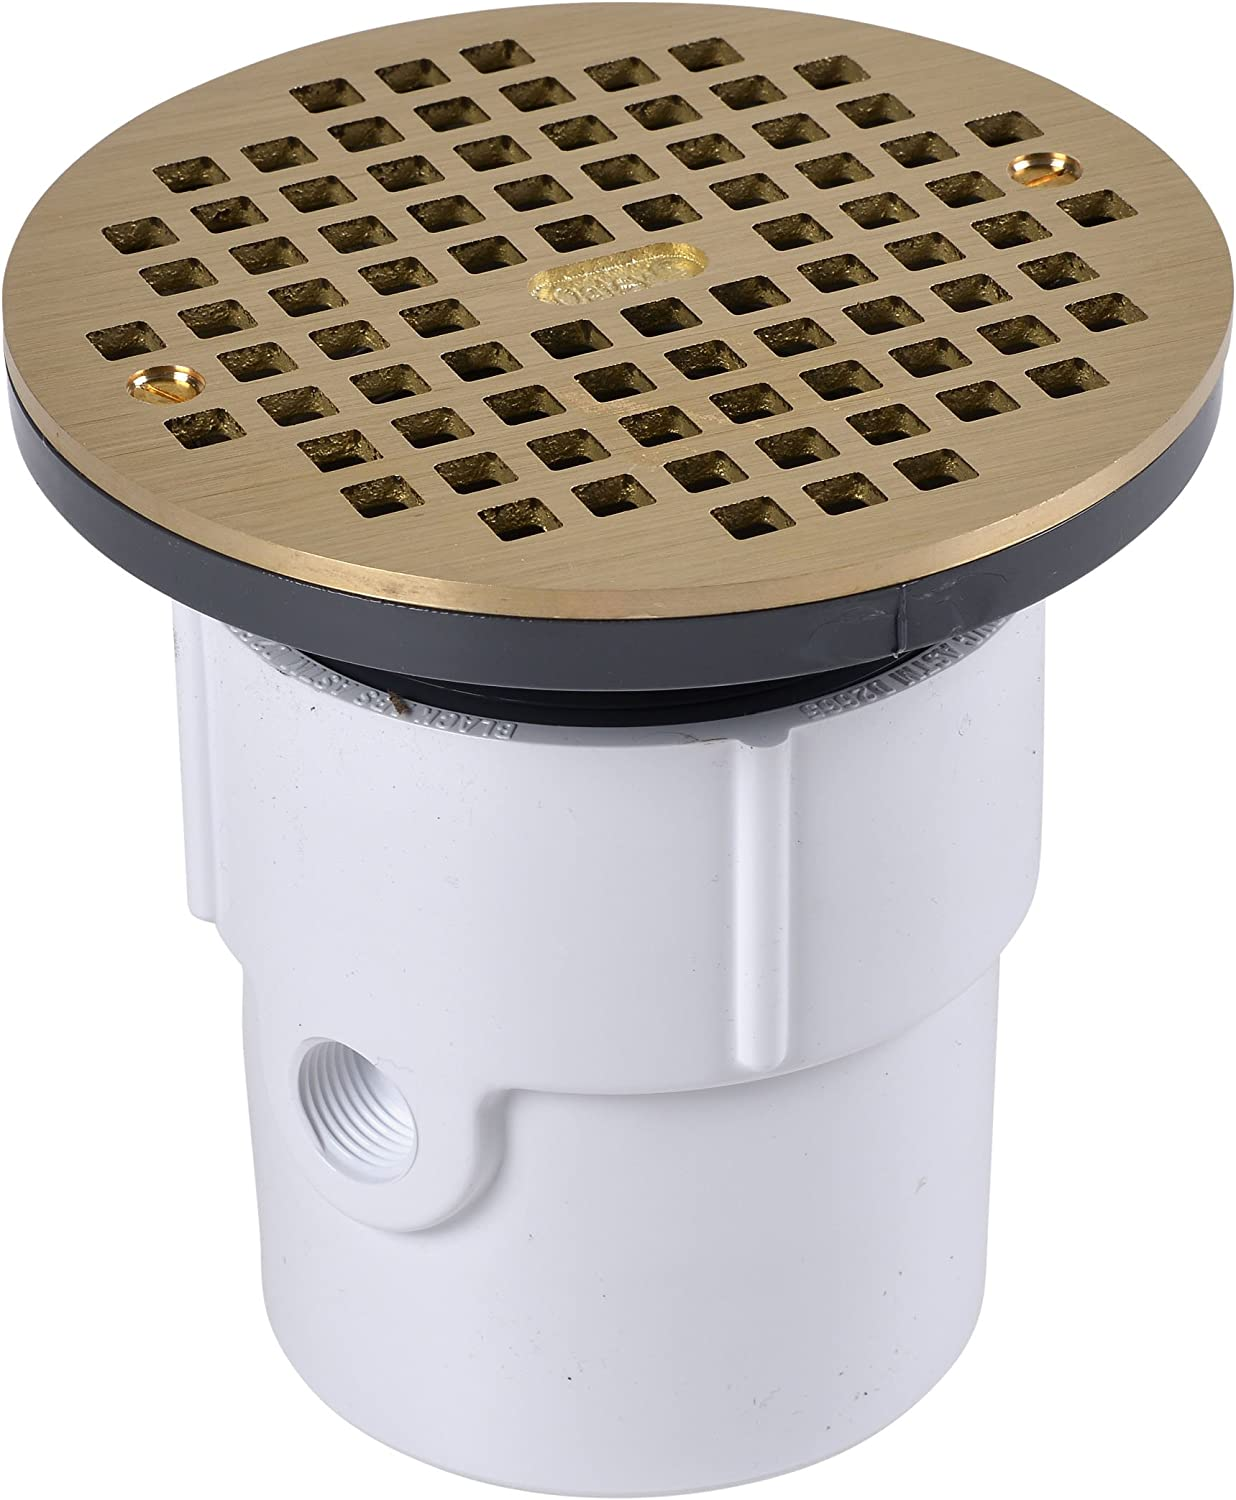 2-Inch Oatey 72372 PVC Adjustable Commercial Drain with 10-Inch Cast NI Grate and Round Top